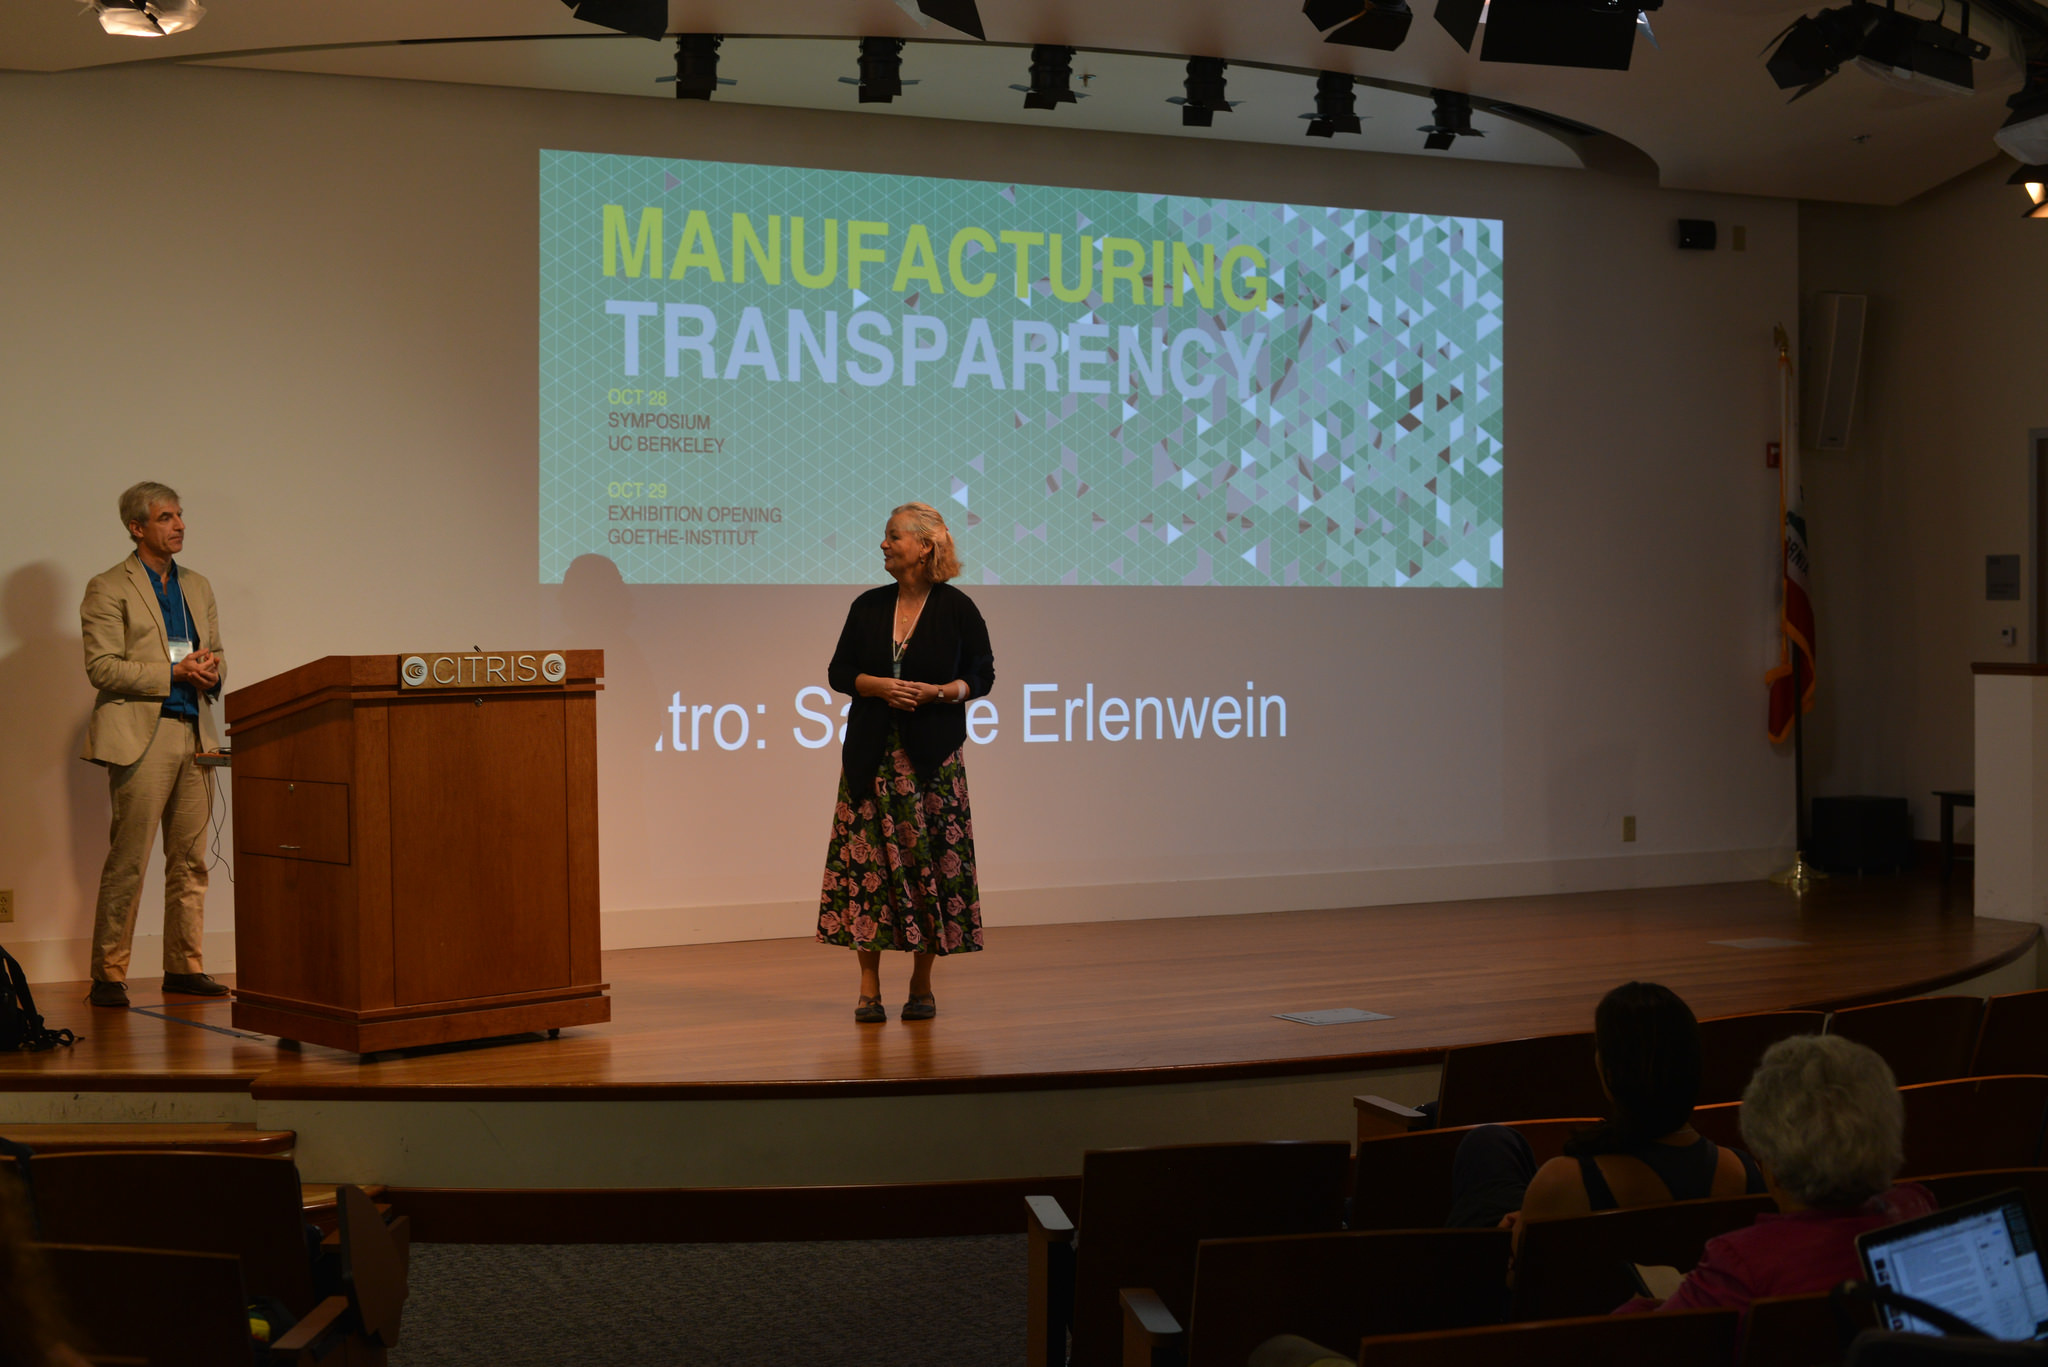 Manufacturing Transparency, Conference on Manufacturing Transparency, Berkeley, CA, USA, October 28, 2015 | © Courtesy of Berkeley Center for New Media/Flickr.